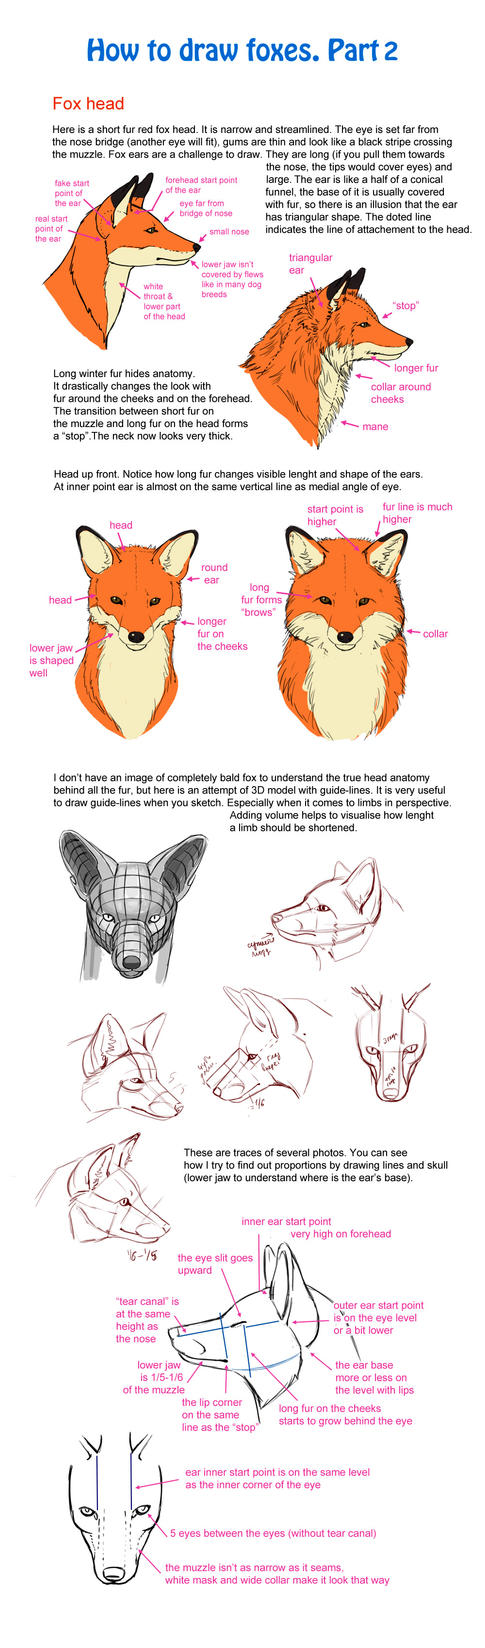 How To Draw Fox, Part 2 By Elruu